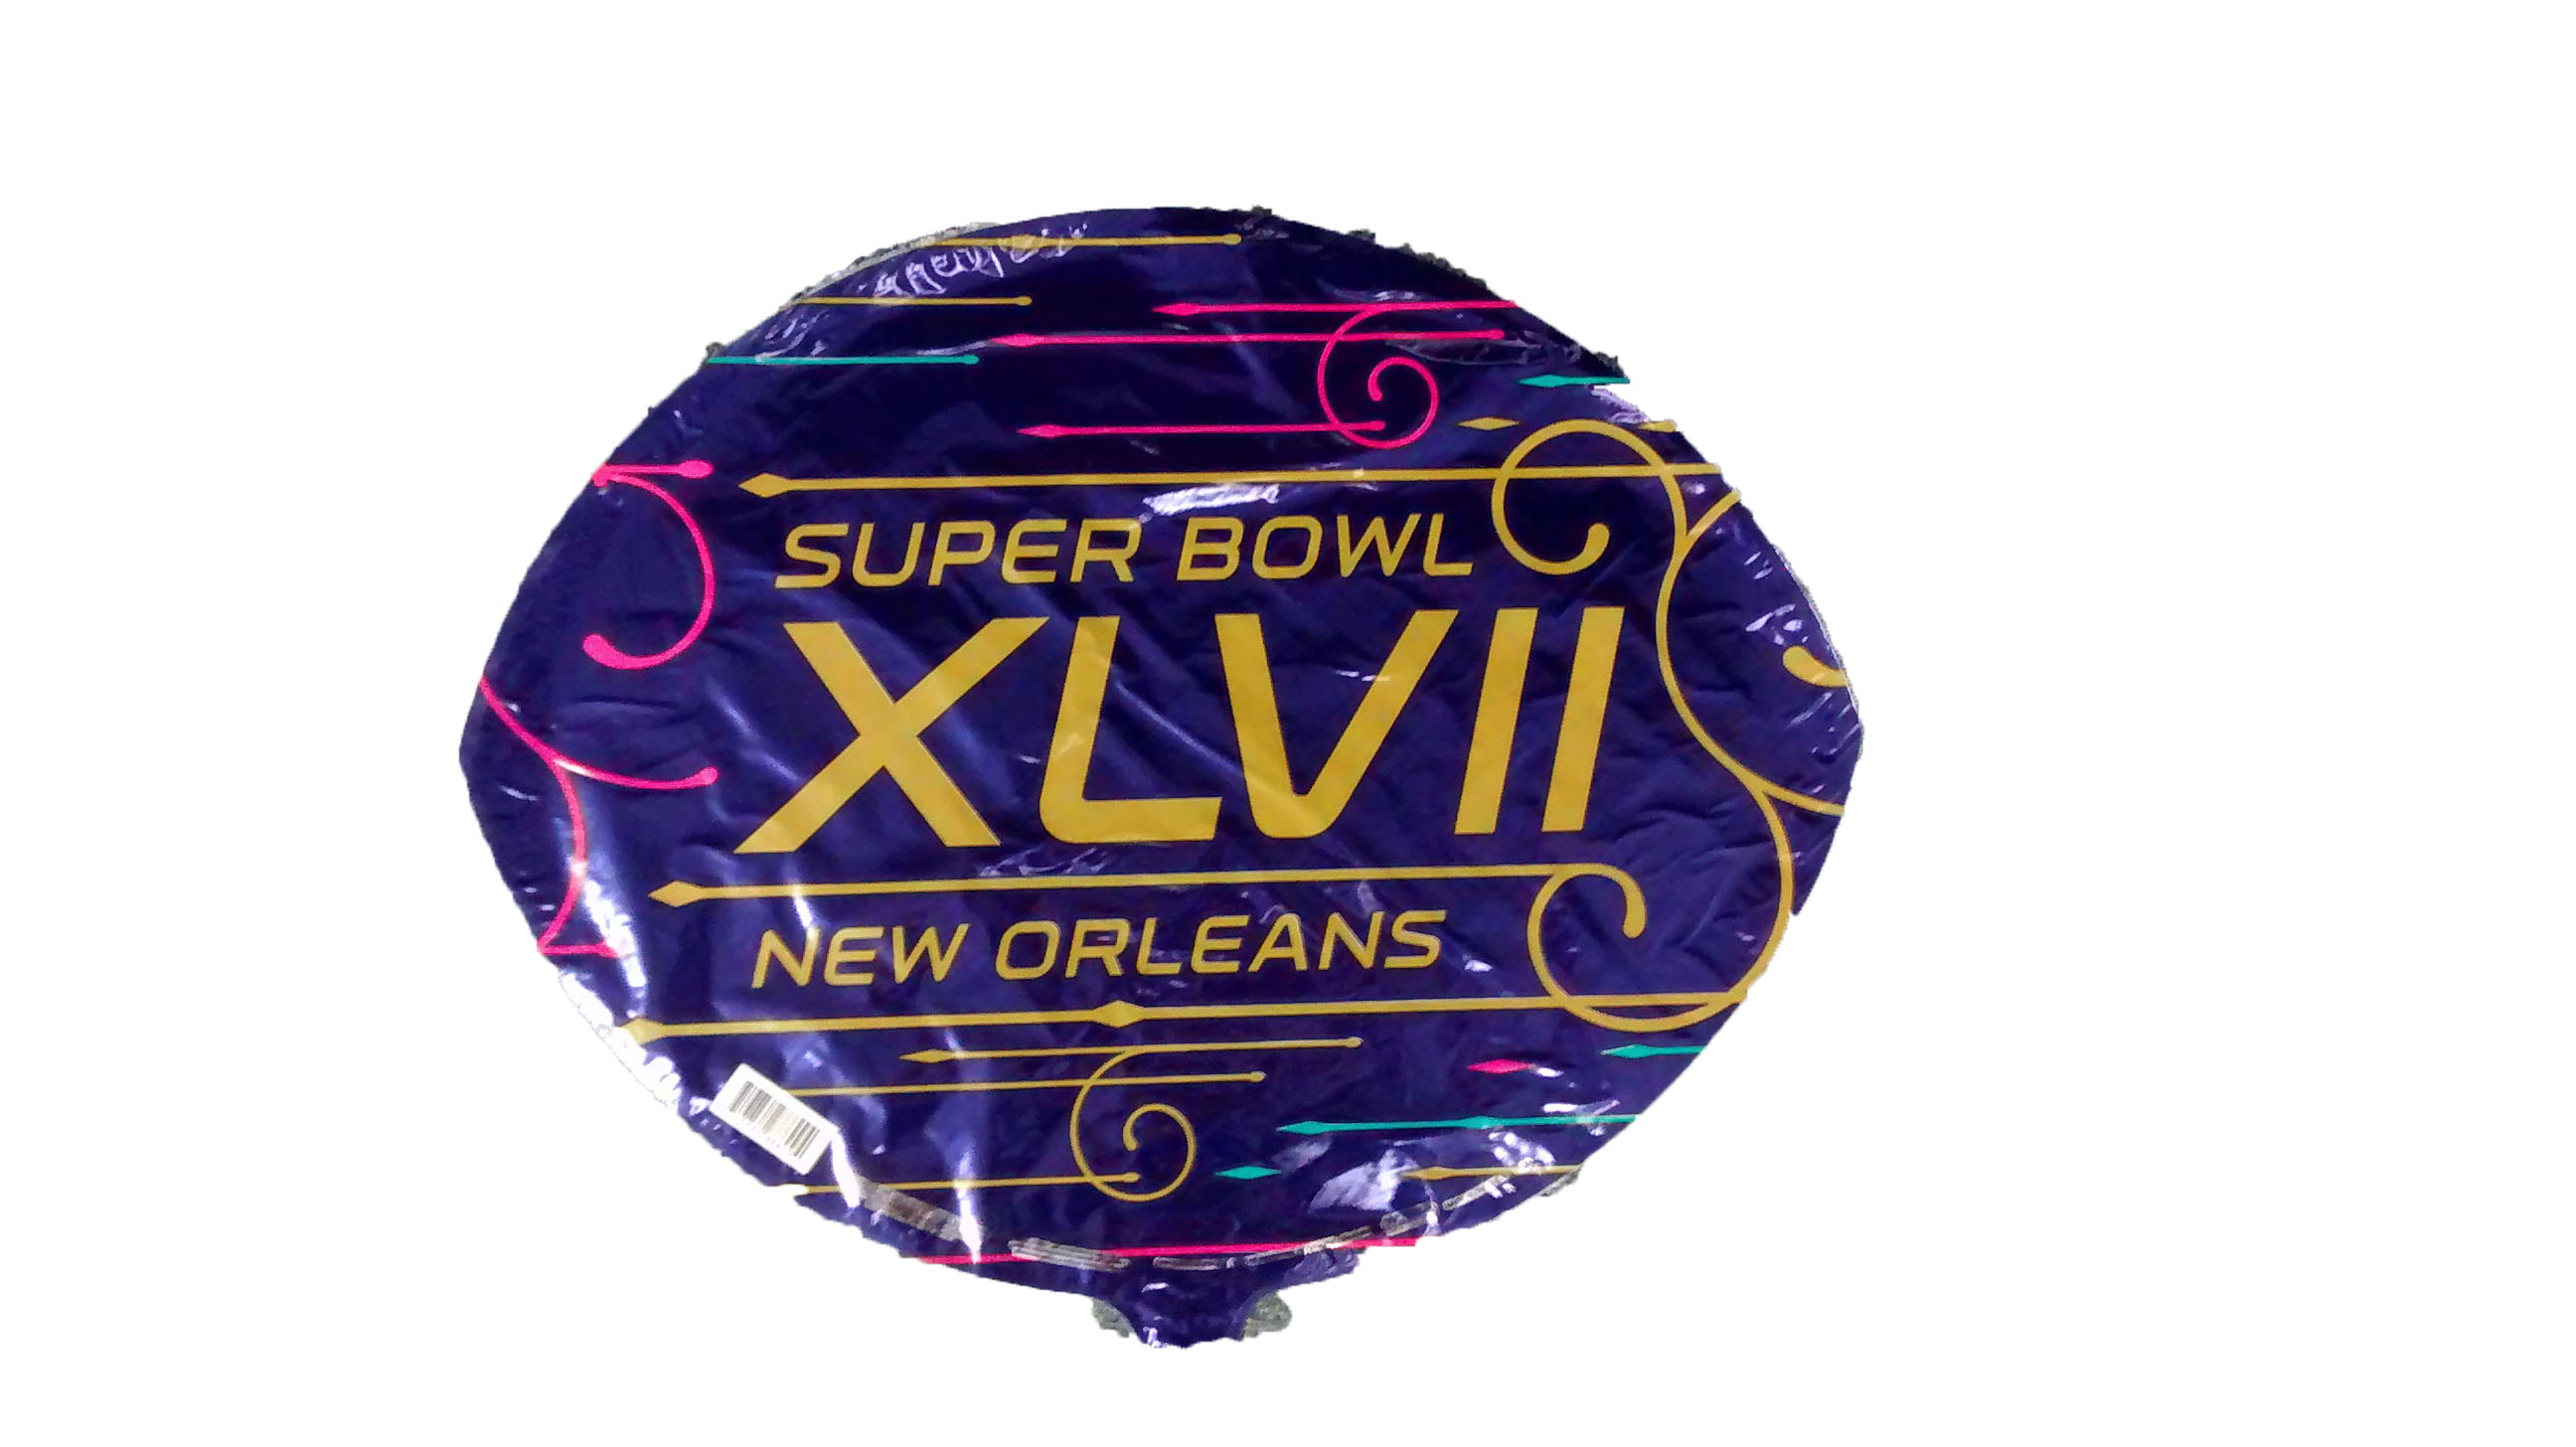 "18"" Super Bowl XLVII New Orleans Purple Balloon"